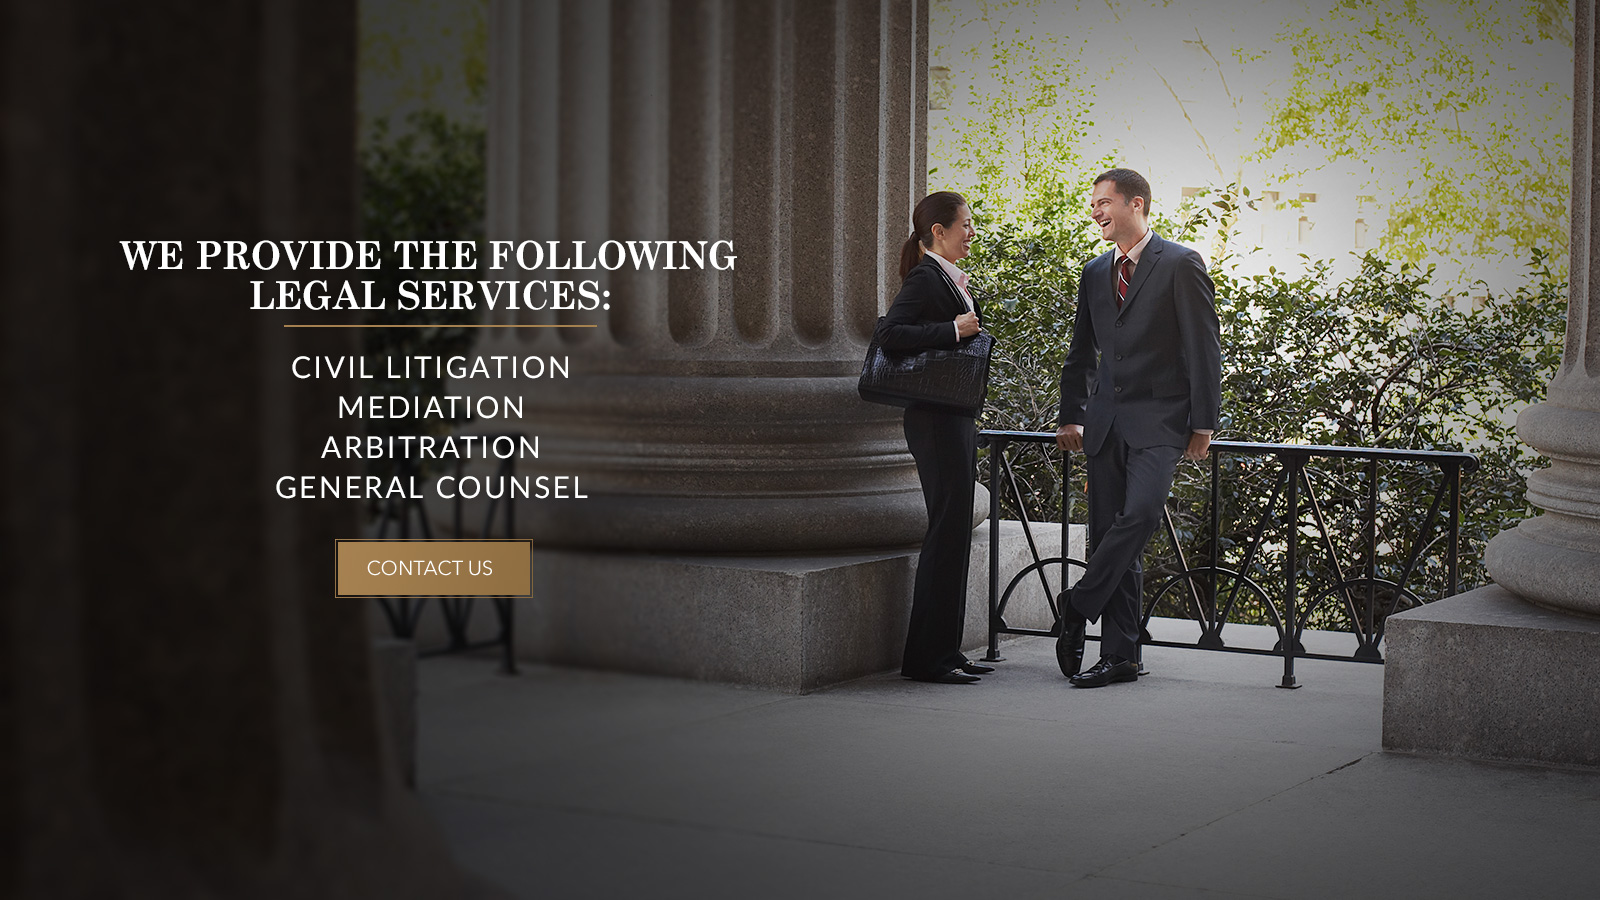 Jacksonville Arbitration and Mediation Services